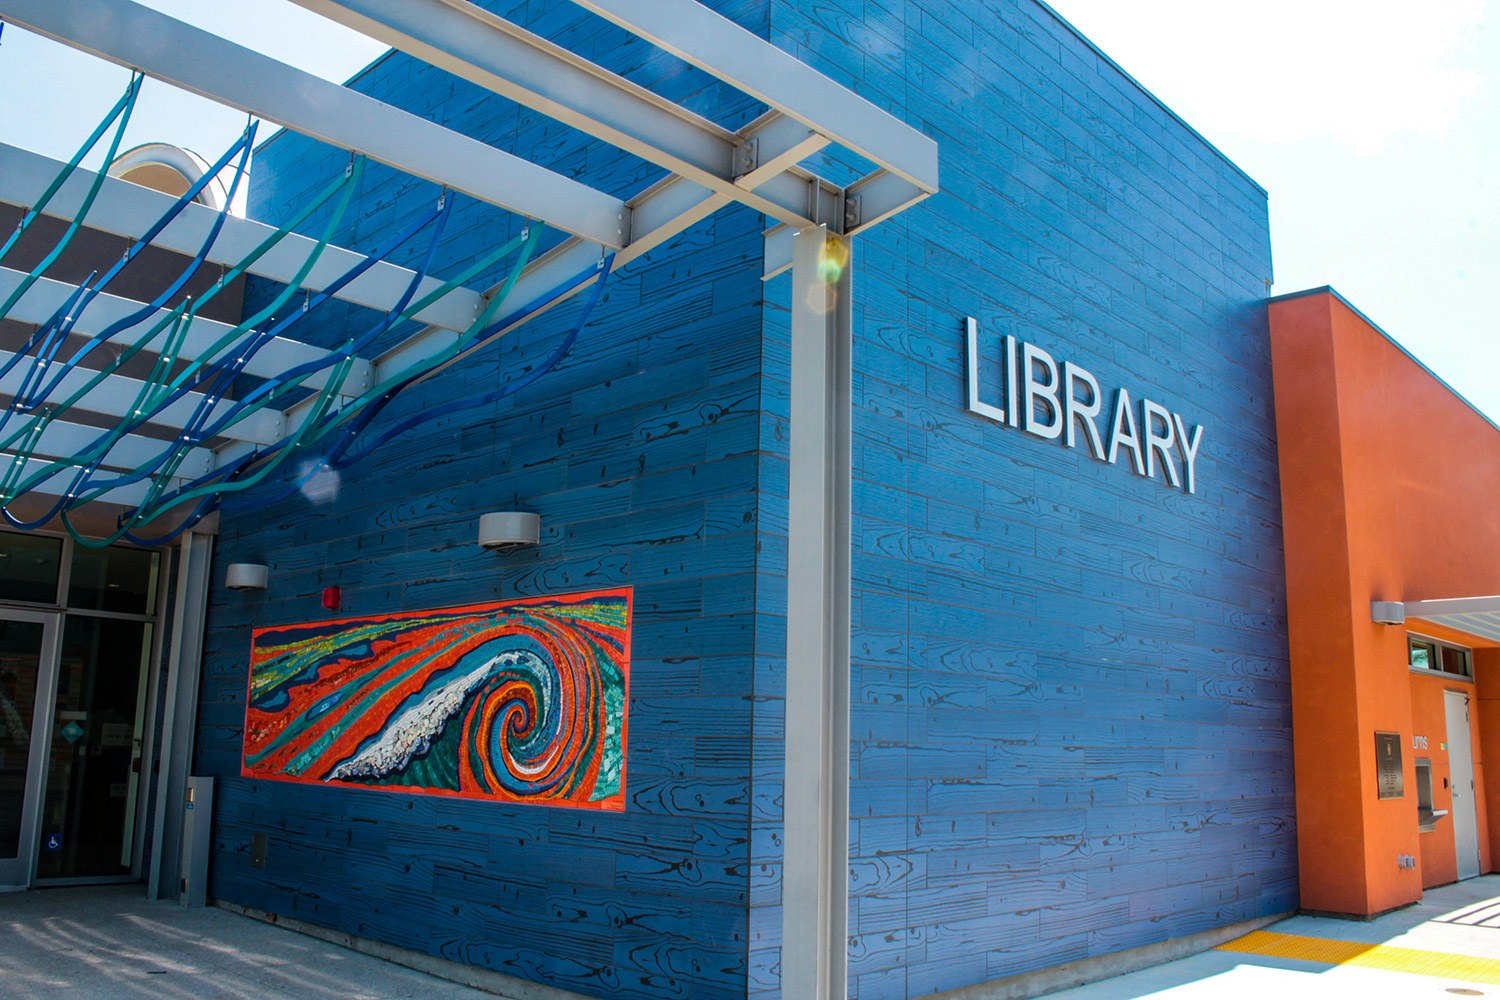 300-IB-Library-Full-front-shot